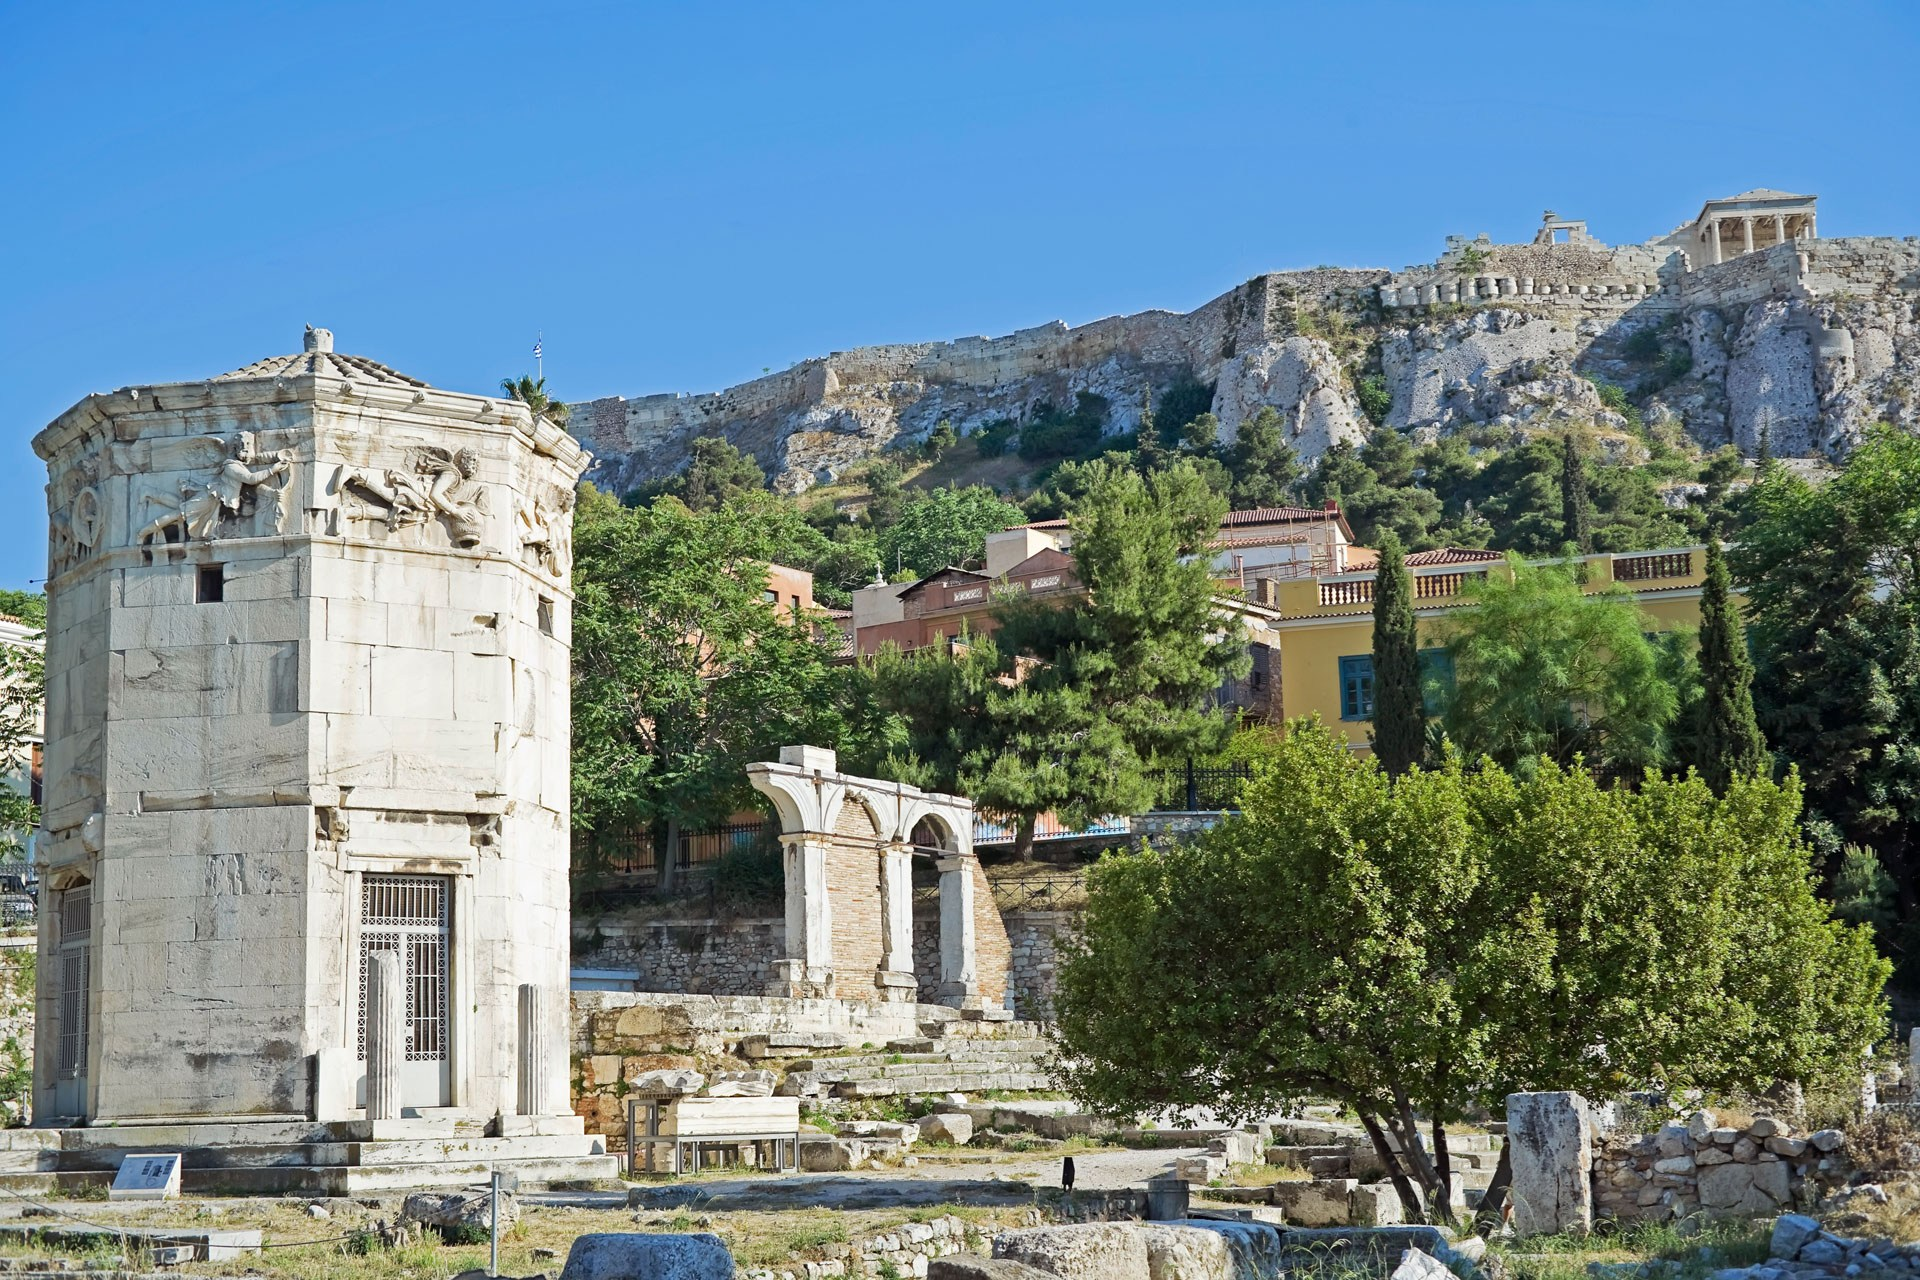 tower-of-the-wind-roman-acropolis-and-agora-athens-greece-conde-nast-traveller-21may15-rex